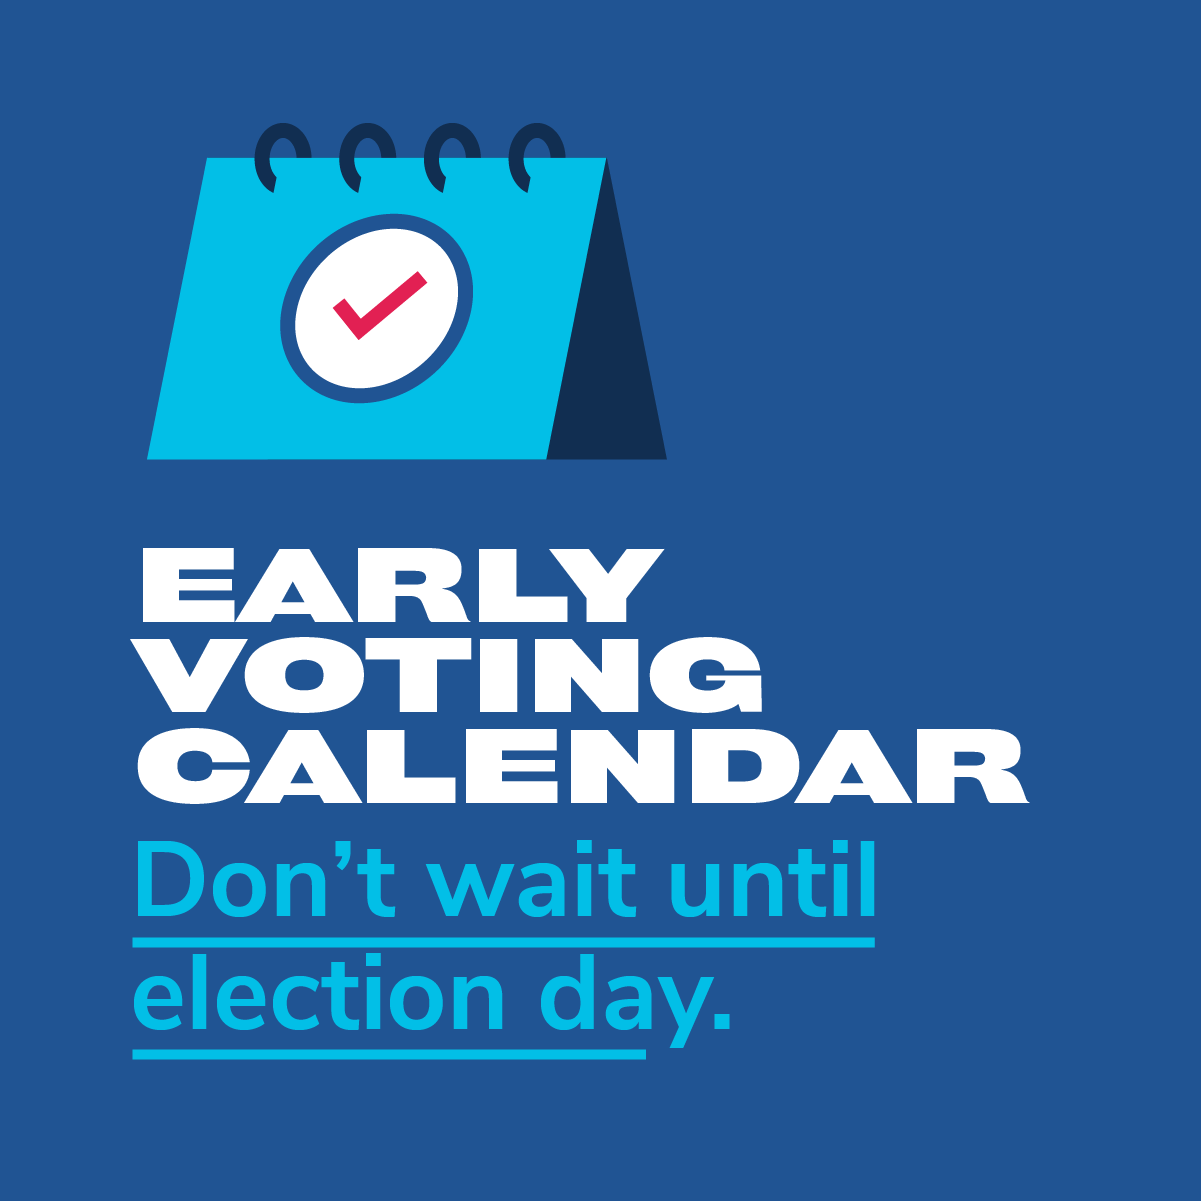 og-early-voting-calendar-square-image